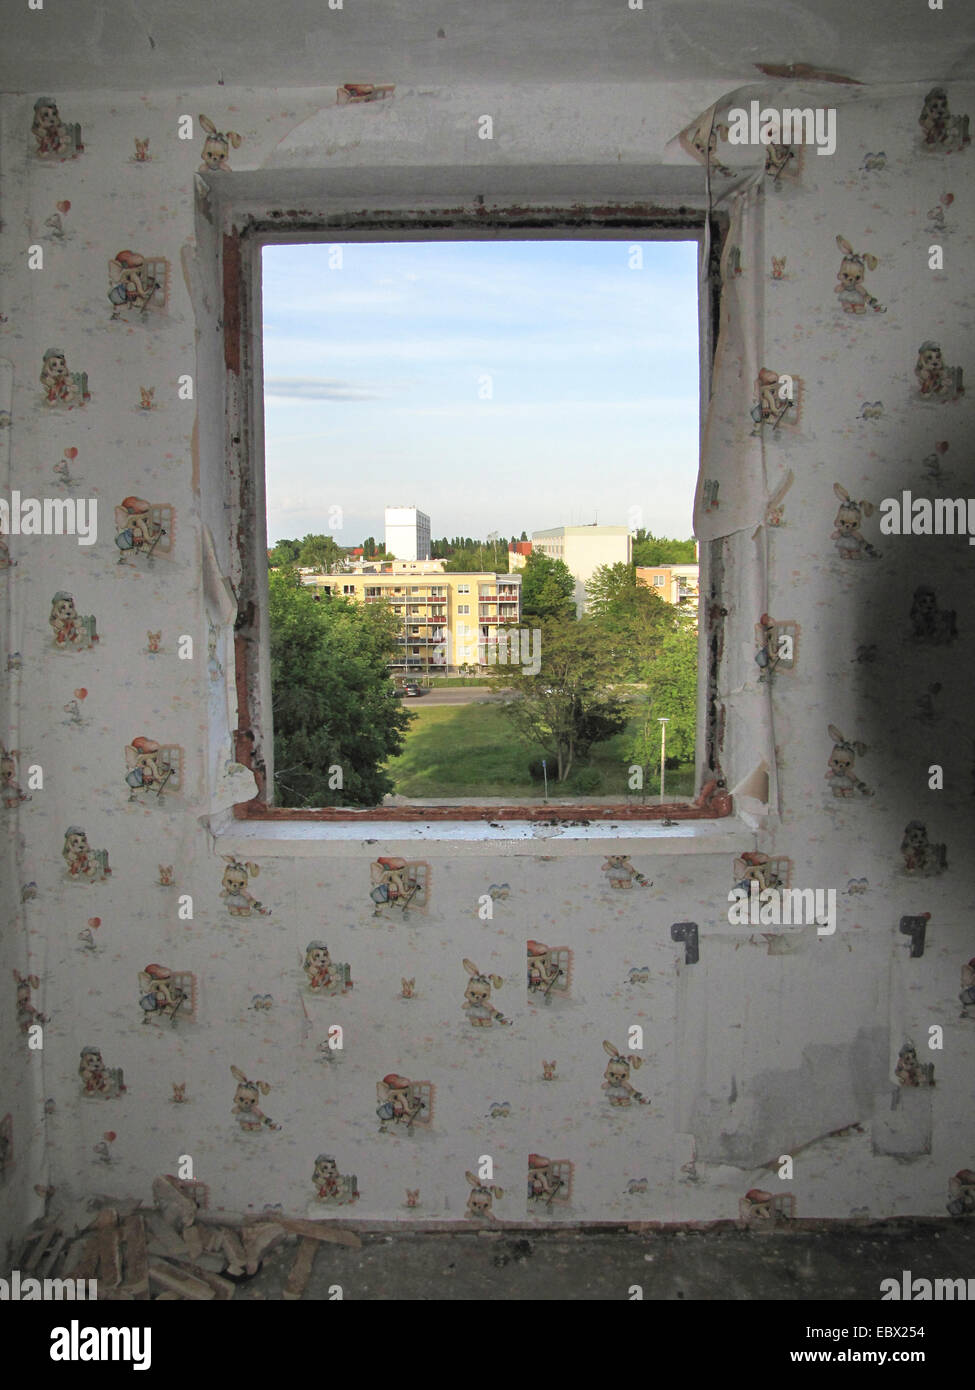 view out of the former nursery of an abandonned appartment in a run down housing estate, Germany, Mecklenburg-Western - Stock Image